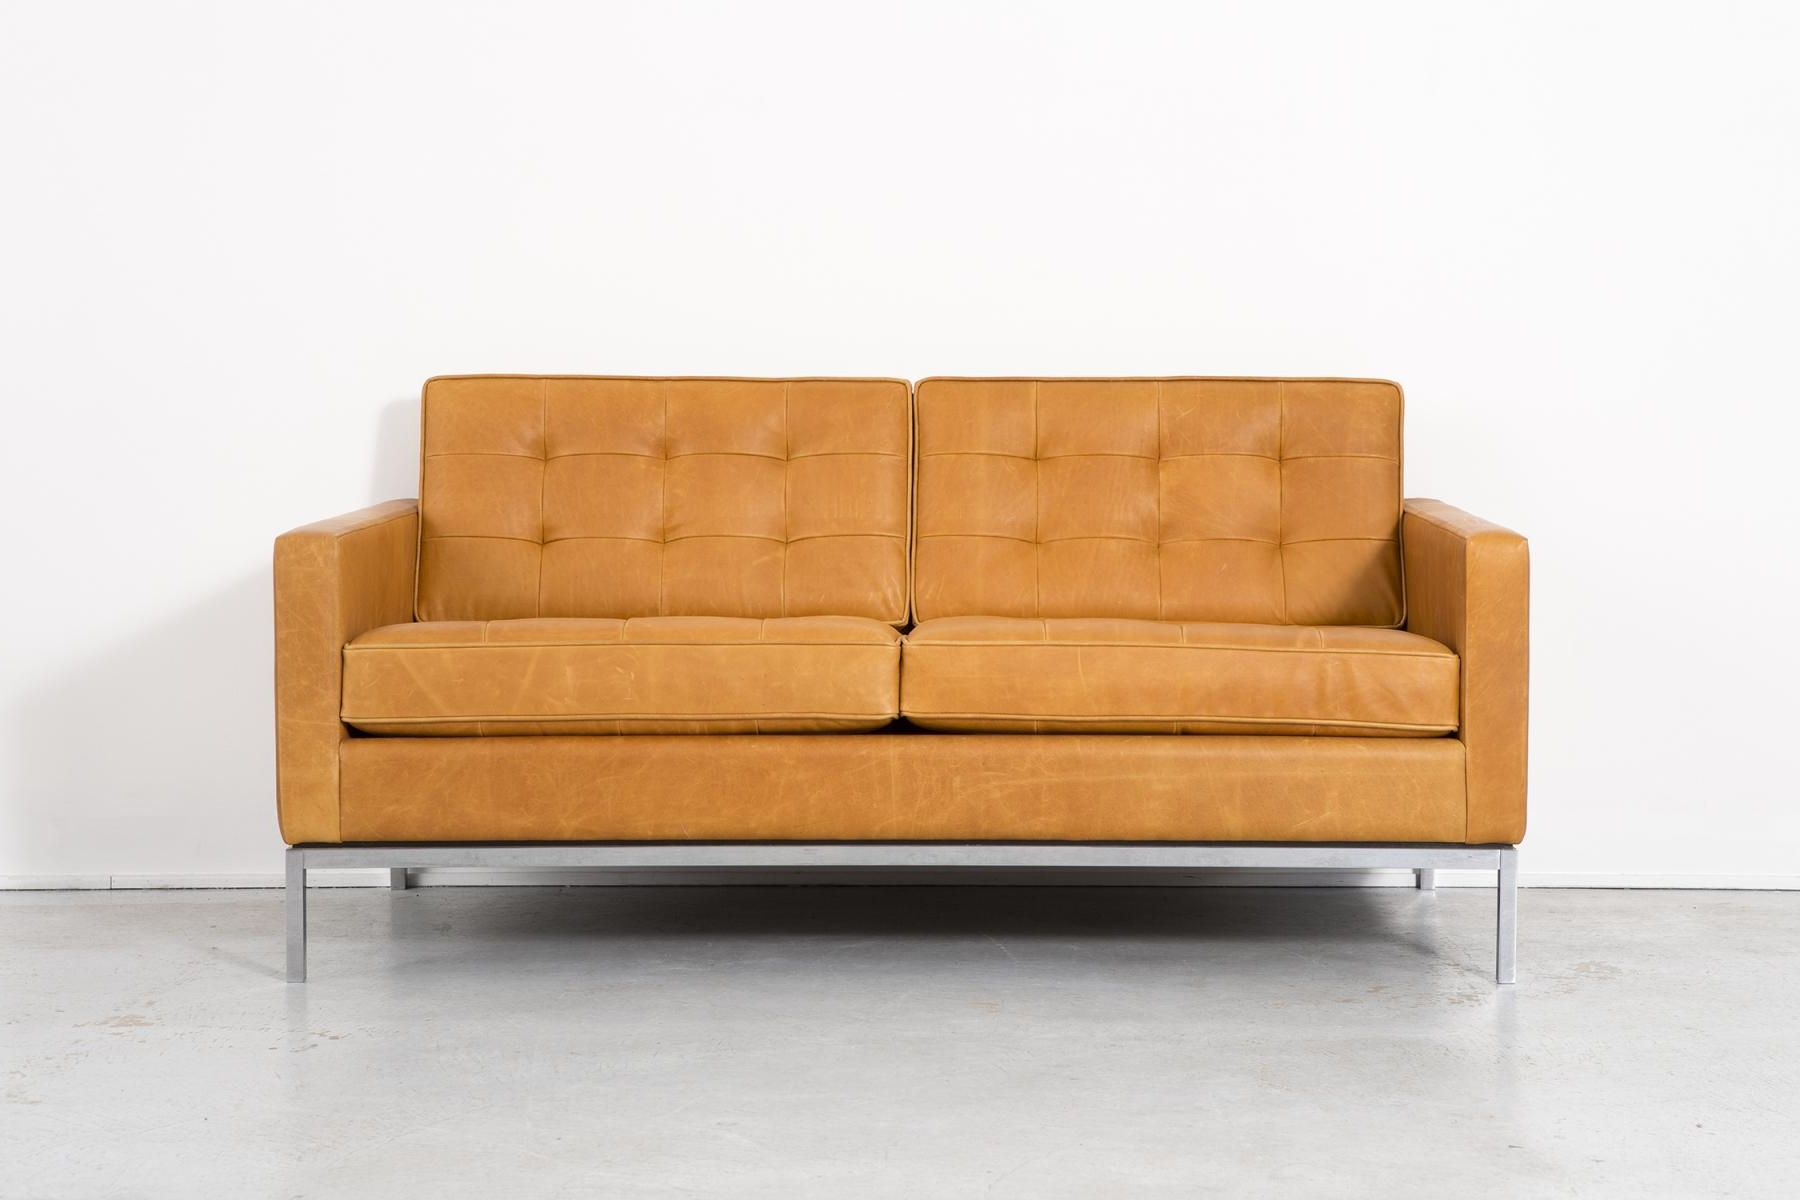 Leather Sofaflorence Knoll Bassett For Knoll, 1970S For Sale In Current Florence Knoll Leather Sofas (View 11 of 20)